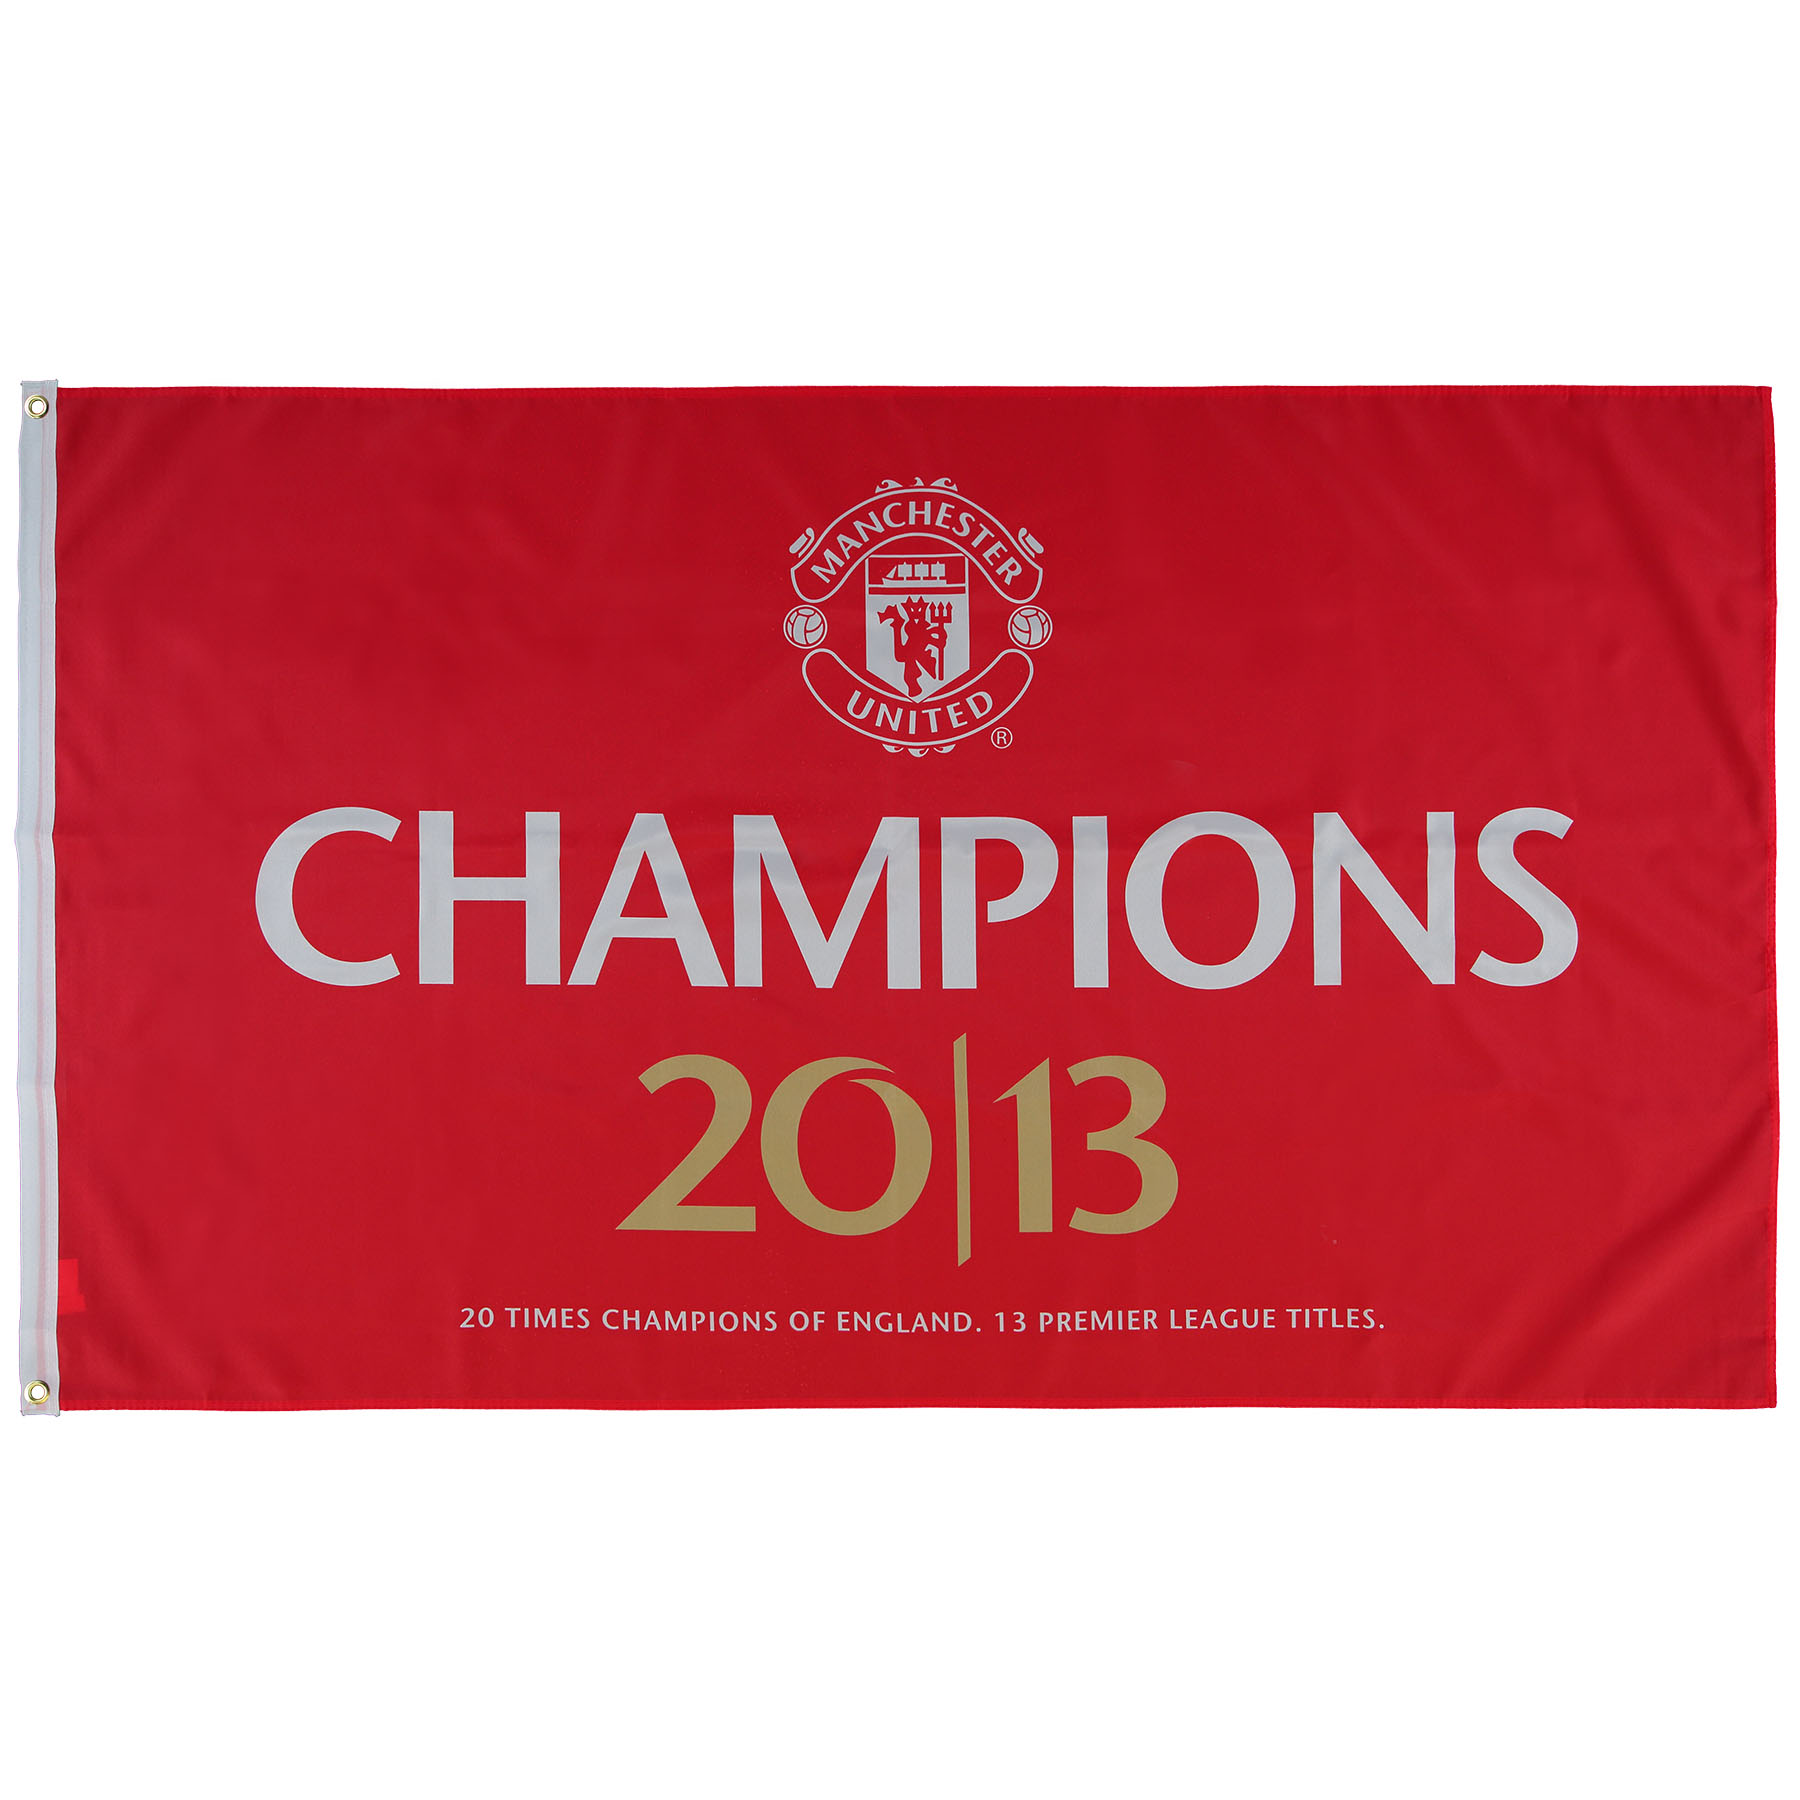 Manchester United Champions 2013 Flag - 5 x 3